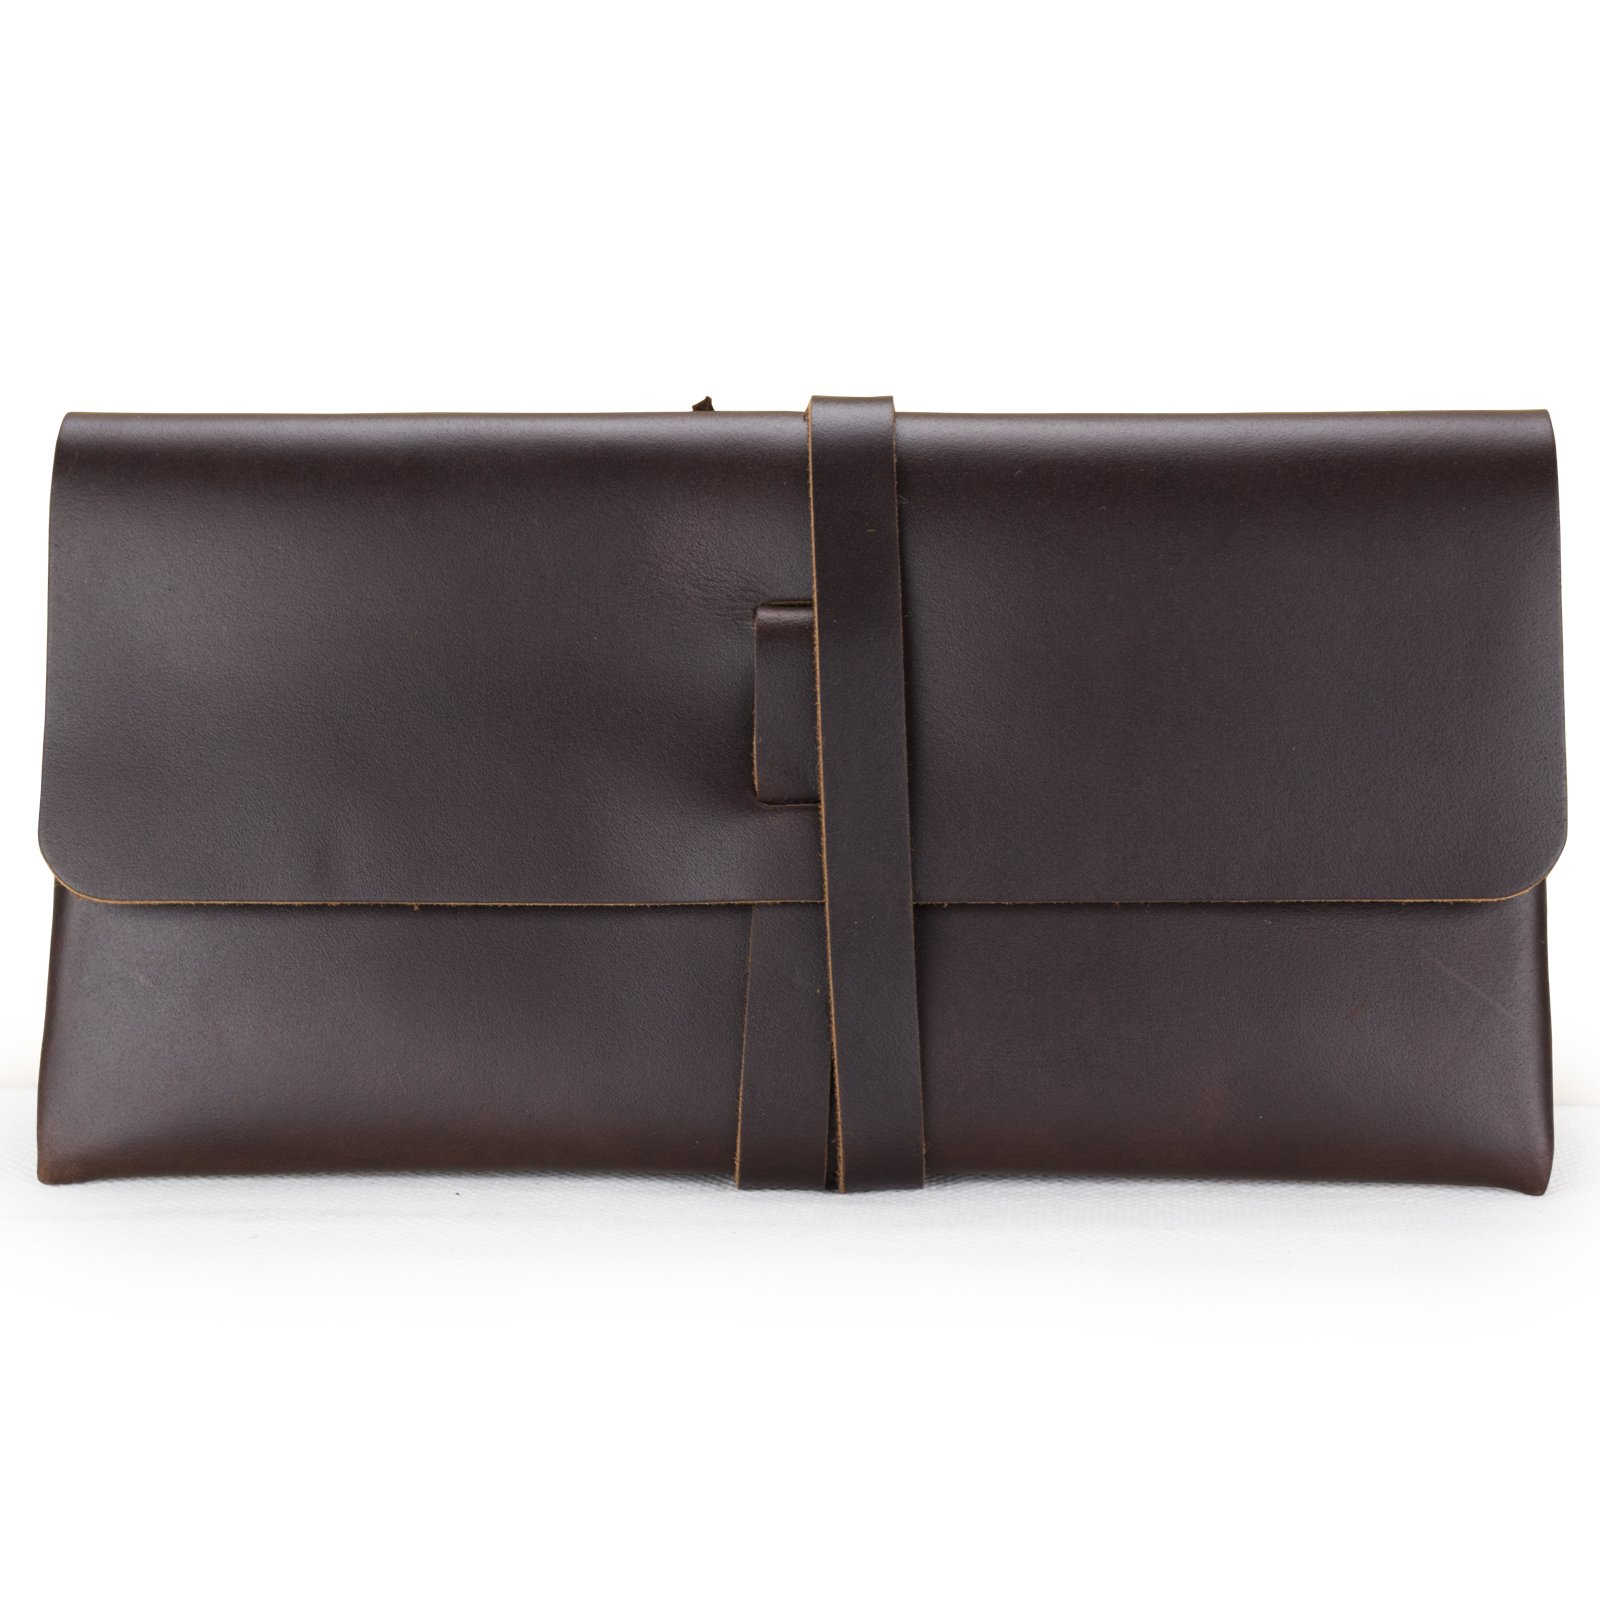 Ancicraft Leather Pouch with Strap Phone Wallet Pen Pencil Case Holder Stationery Kits Bag Purse Handmade Dark Coffee Gift